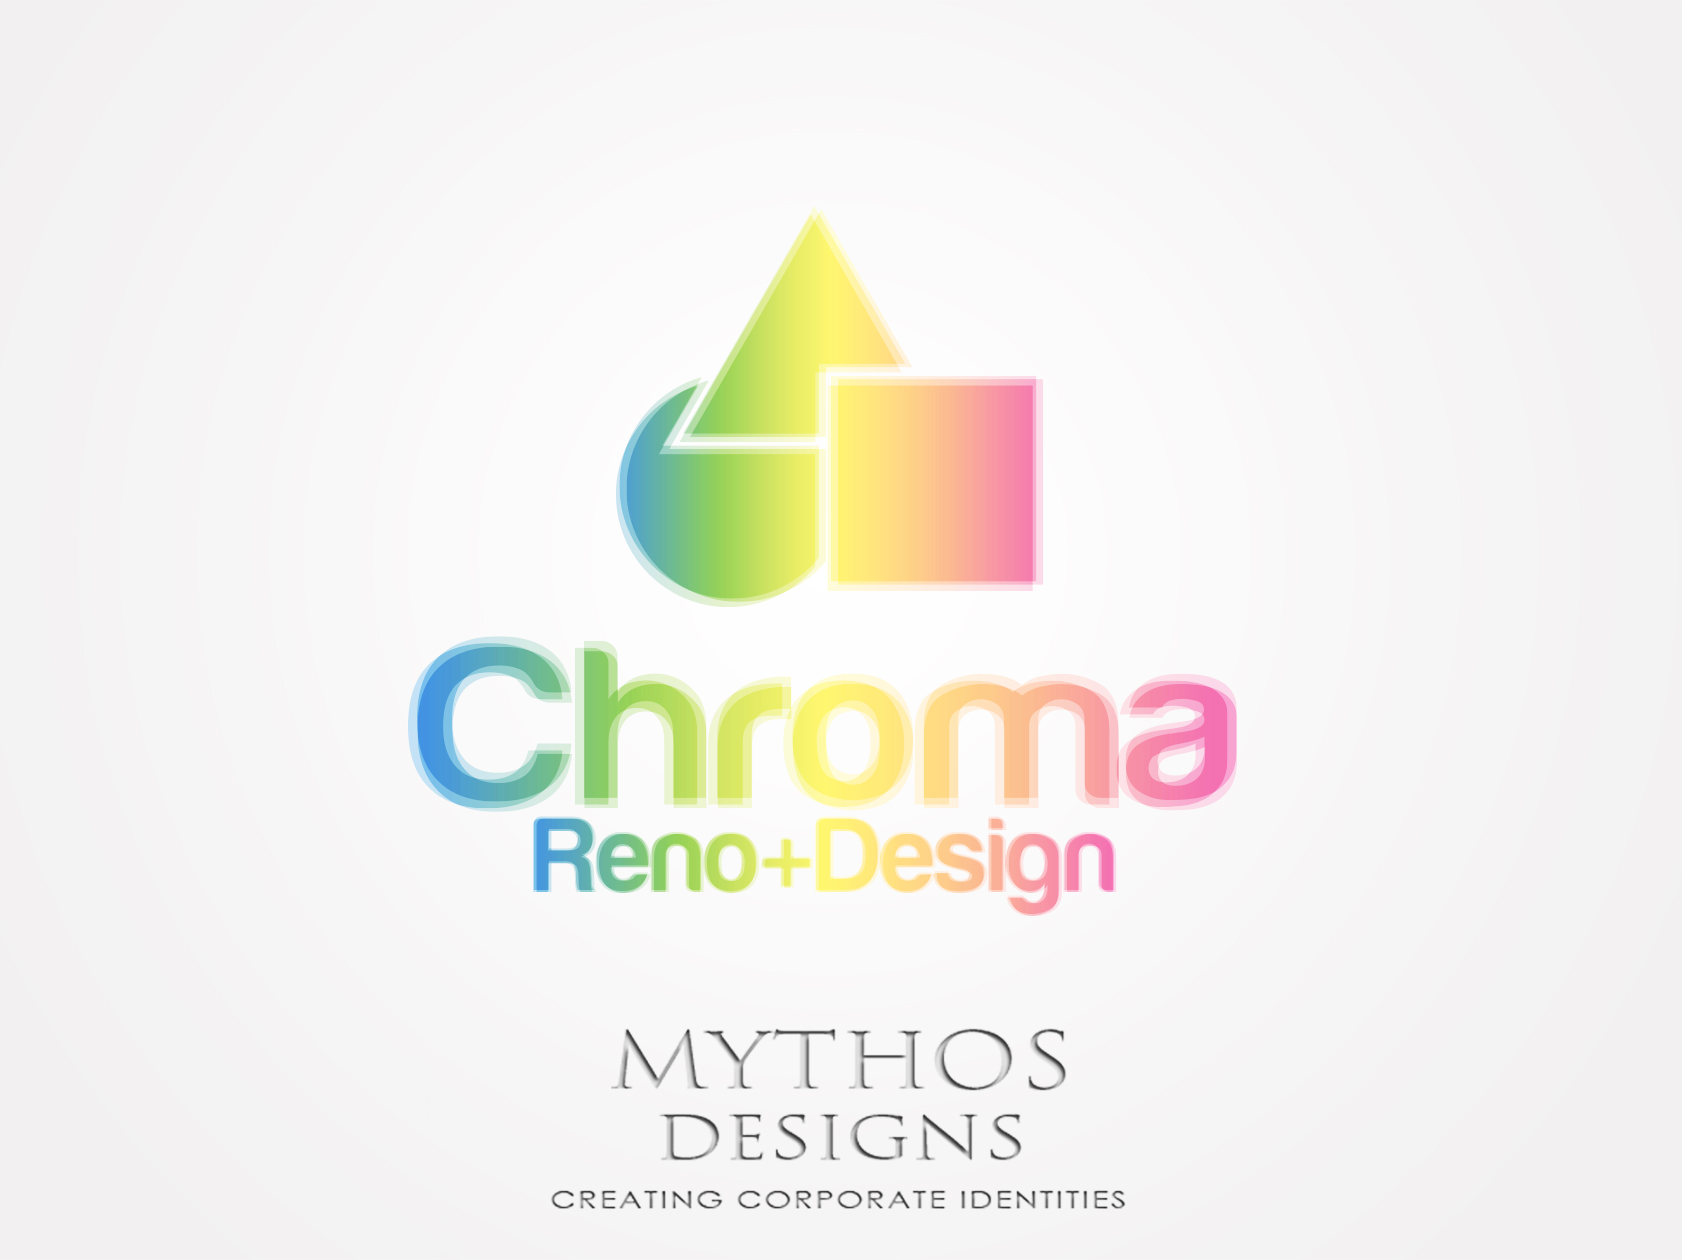 Logo Design by Mythos Designs - Entry No. 278 in the Logo Design Contest Inspiring Logo Design for Chroma Reno+Design.